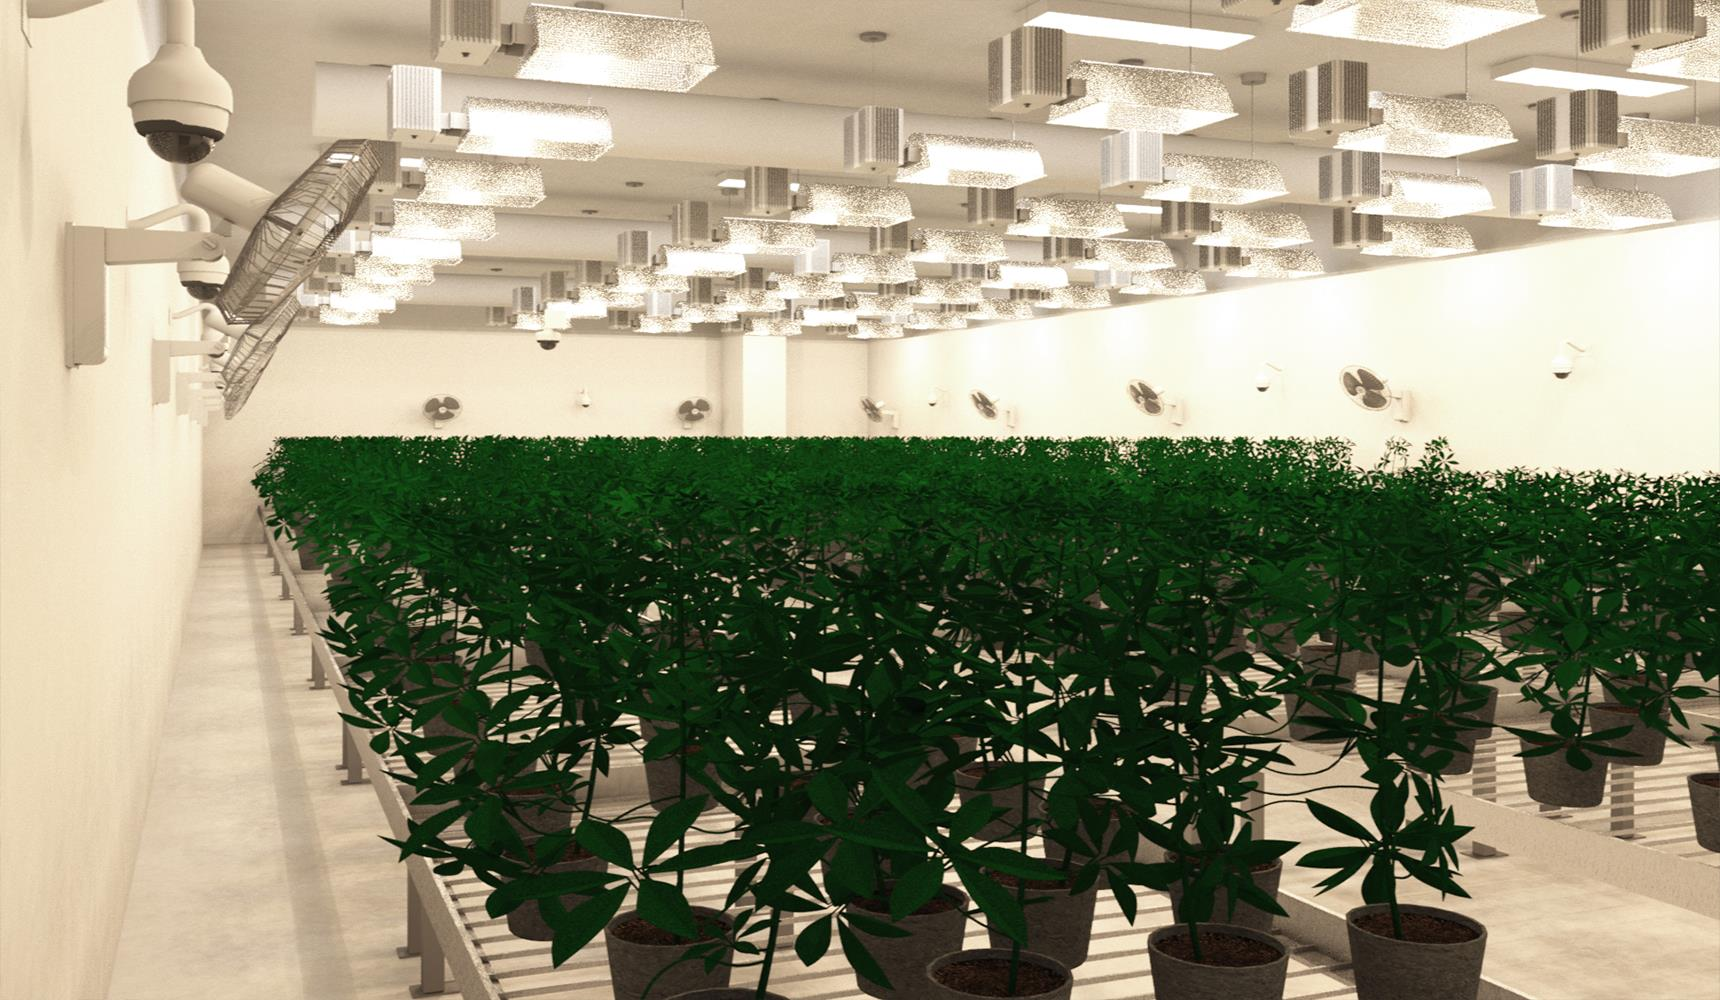 Grow Room Facility Design